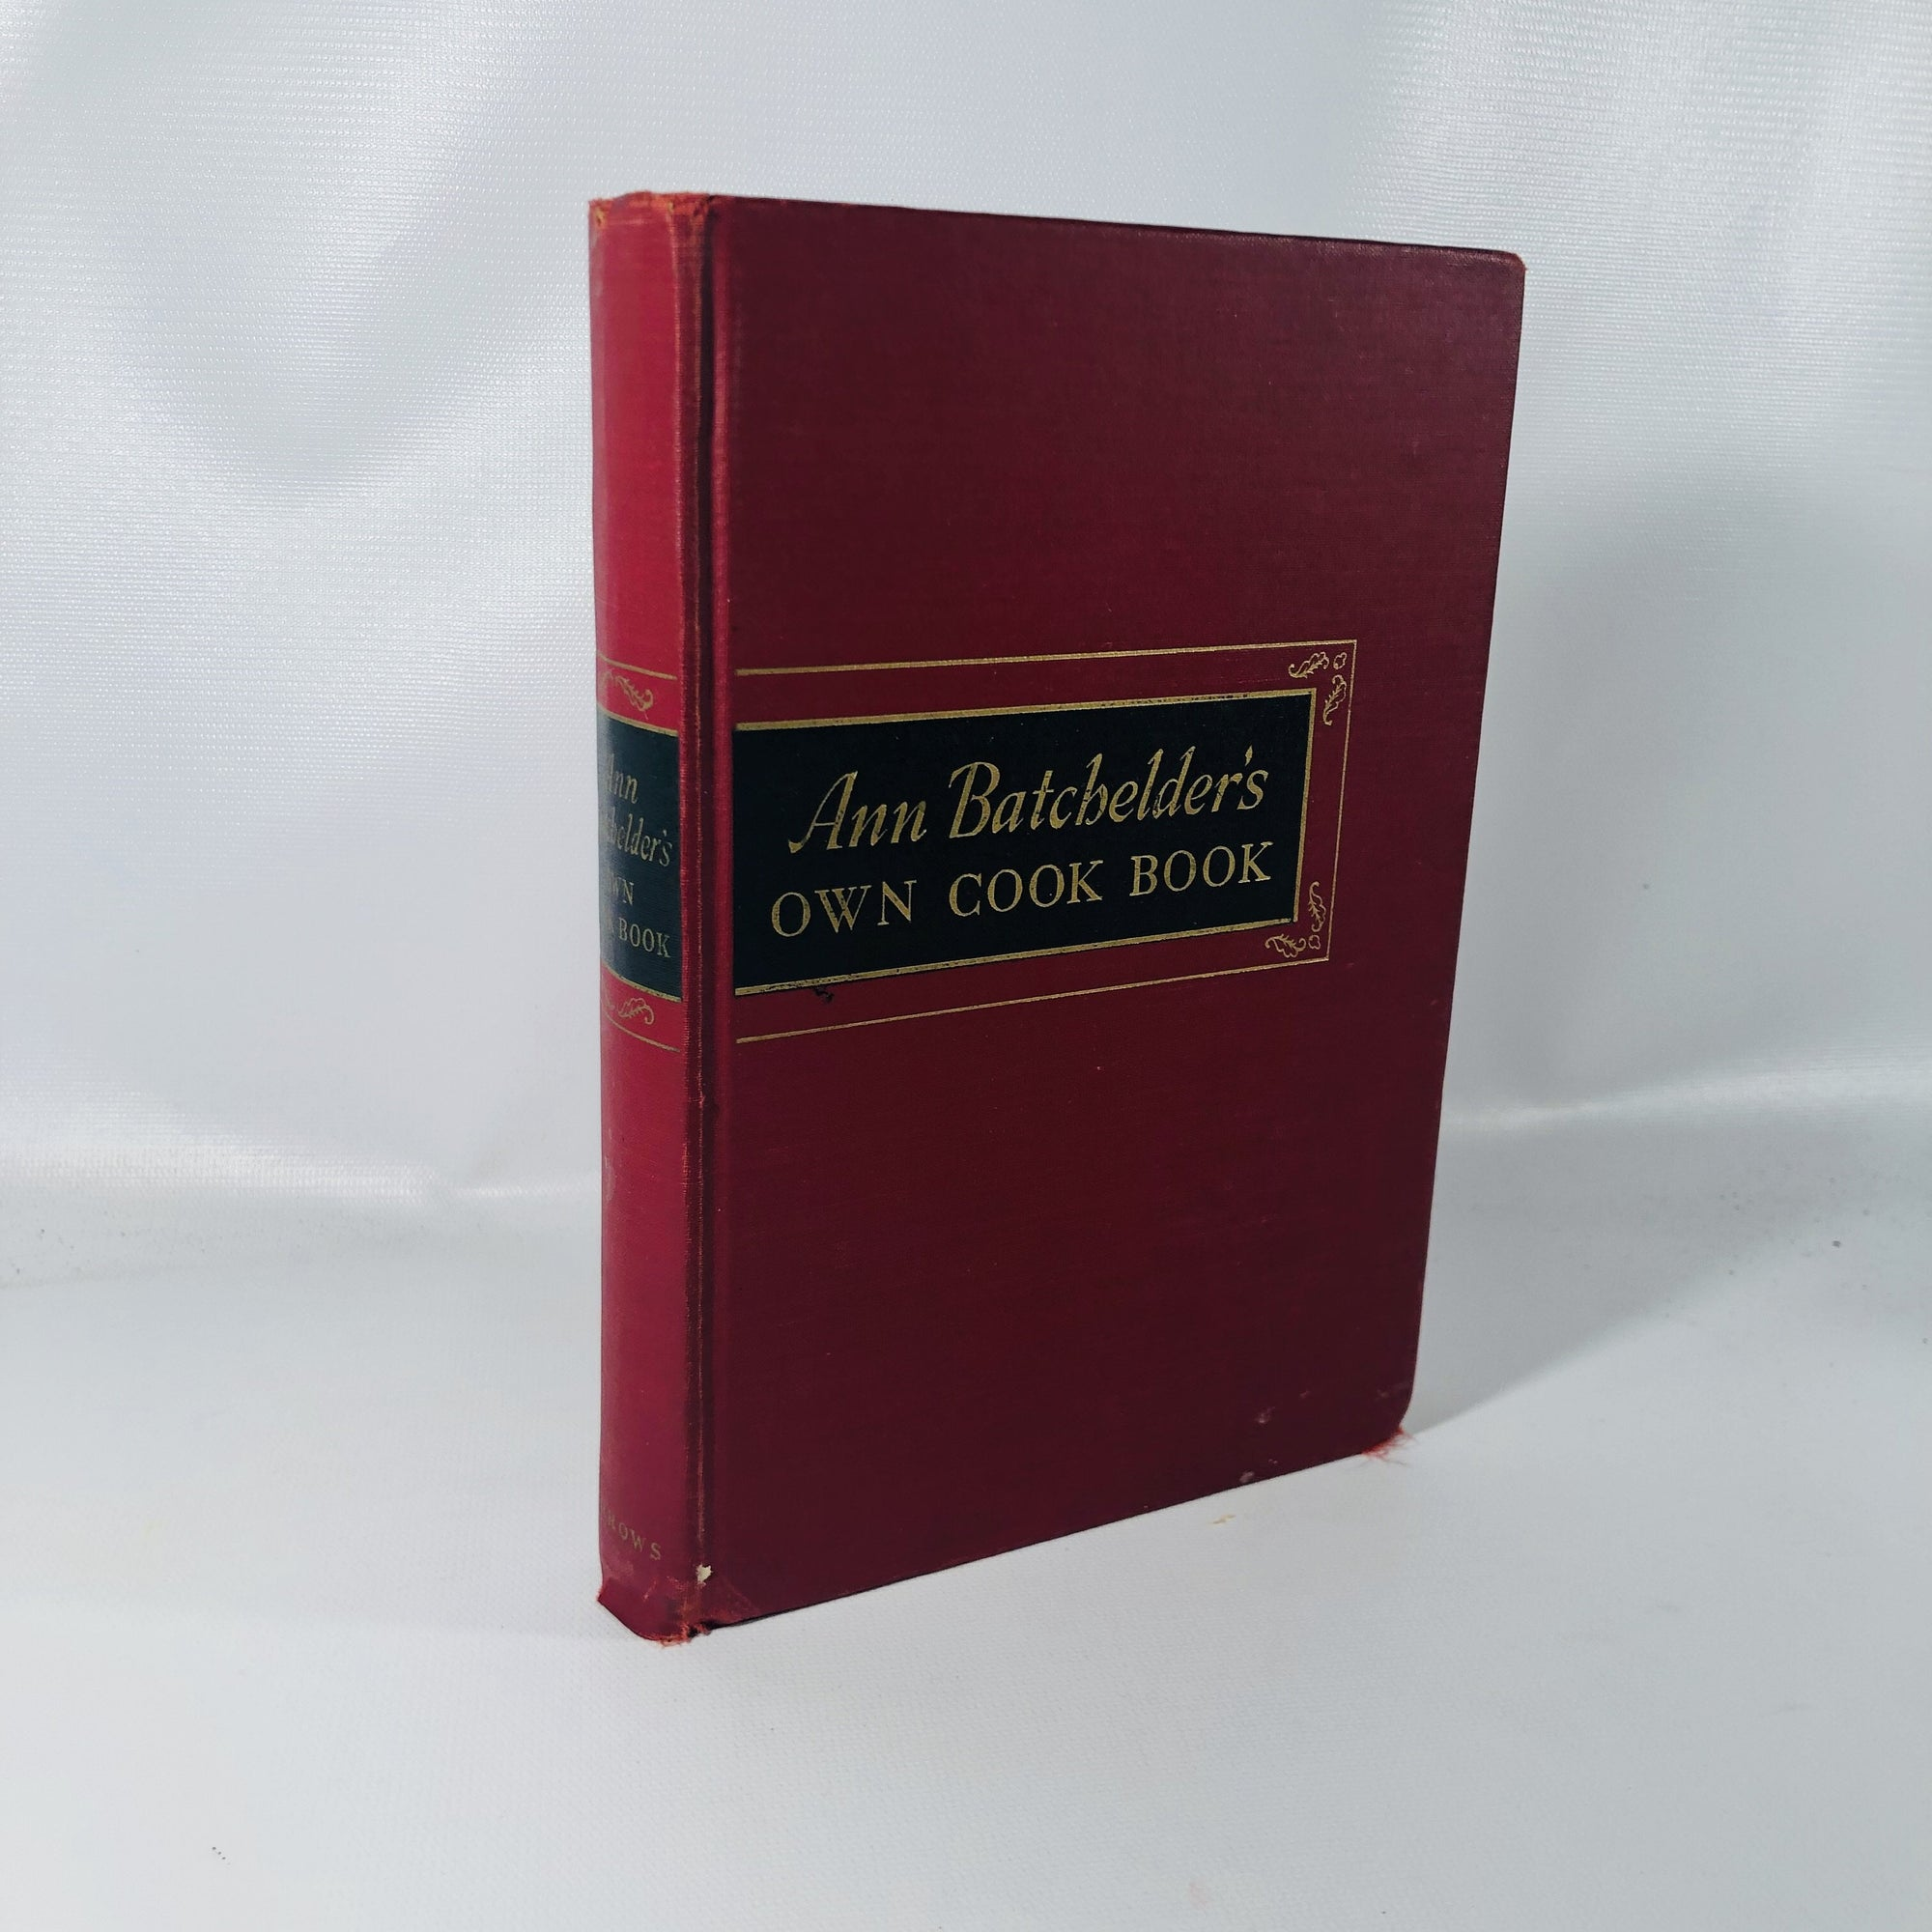 Ann Batchelder's Own Cook Book 1941 A First Edition Cook Book